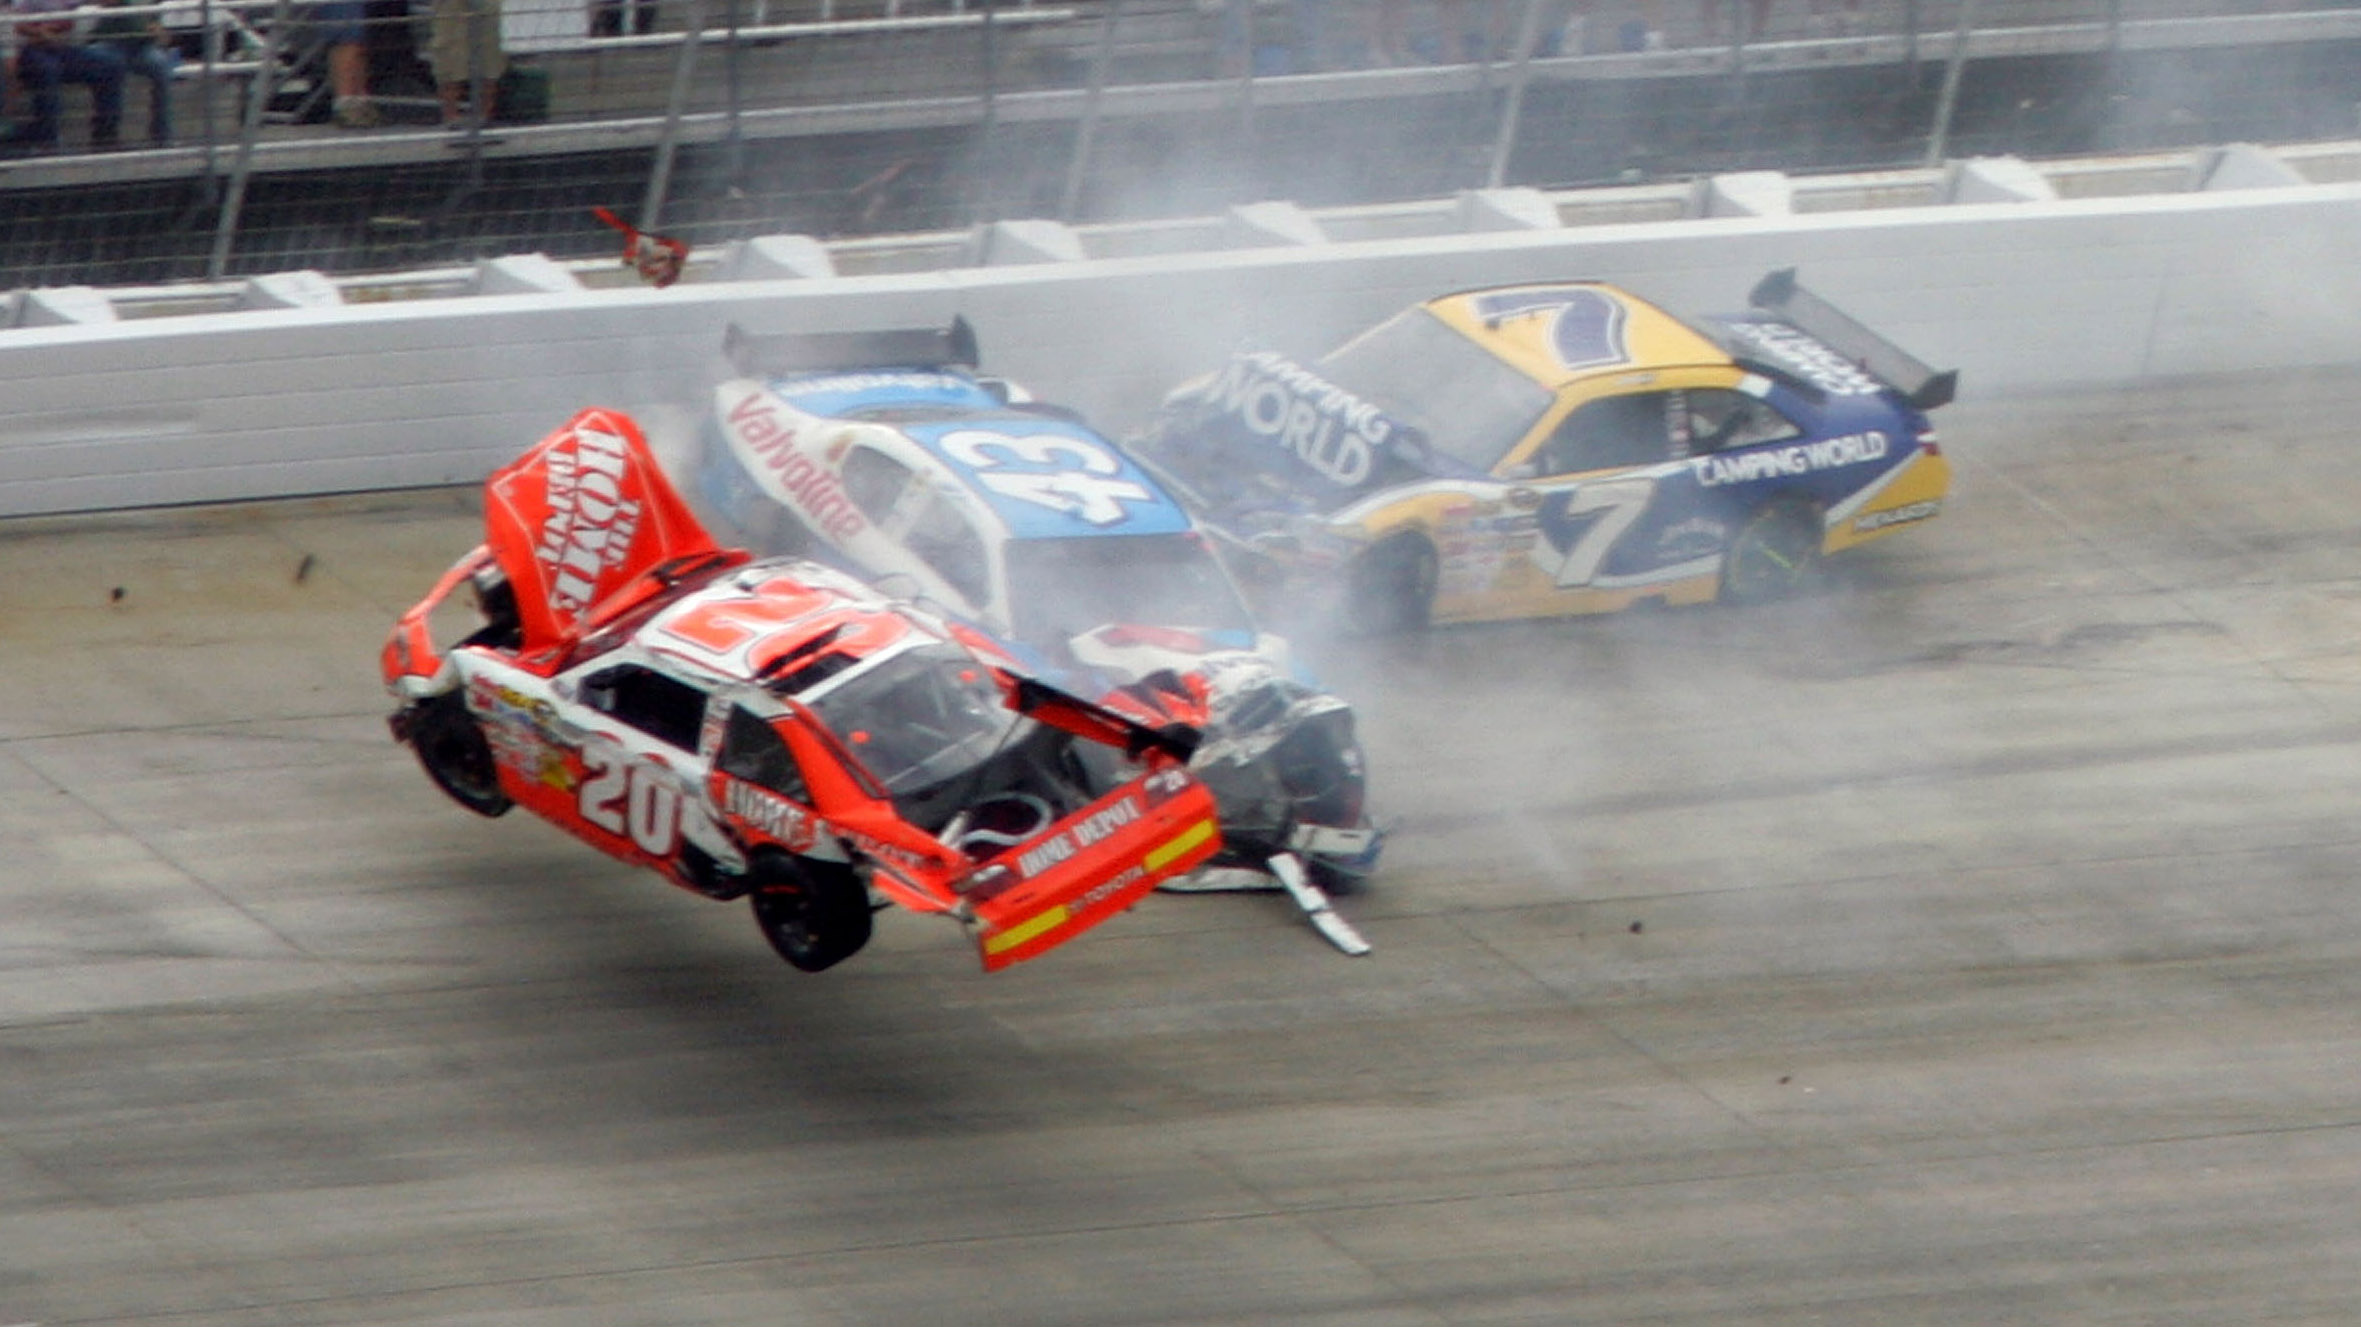 DOVER, DE - SEPTEMBER 27:  (L-R) Joey Logano, driver of the #20 Home Depot Toyota, flips his car after he was involved in a wreck with Reed Sorenson, driver of the #43 Valvoline Dodge, Robby Gordon, driver of the #7 Camping World Toyota and Martin Truex Jr. (not pictured), driver of the #1 Vaseline MEN Body Lotion Chevrolet during the NASCAR Sprint Cup Series AAA 400 at Dover International Speedway on September 27, 2009 in Dover, Delaware.  (Photo by Jerry Markland/Getty Images for NASCAR)